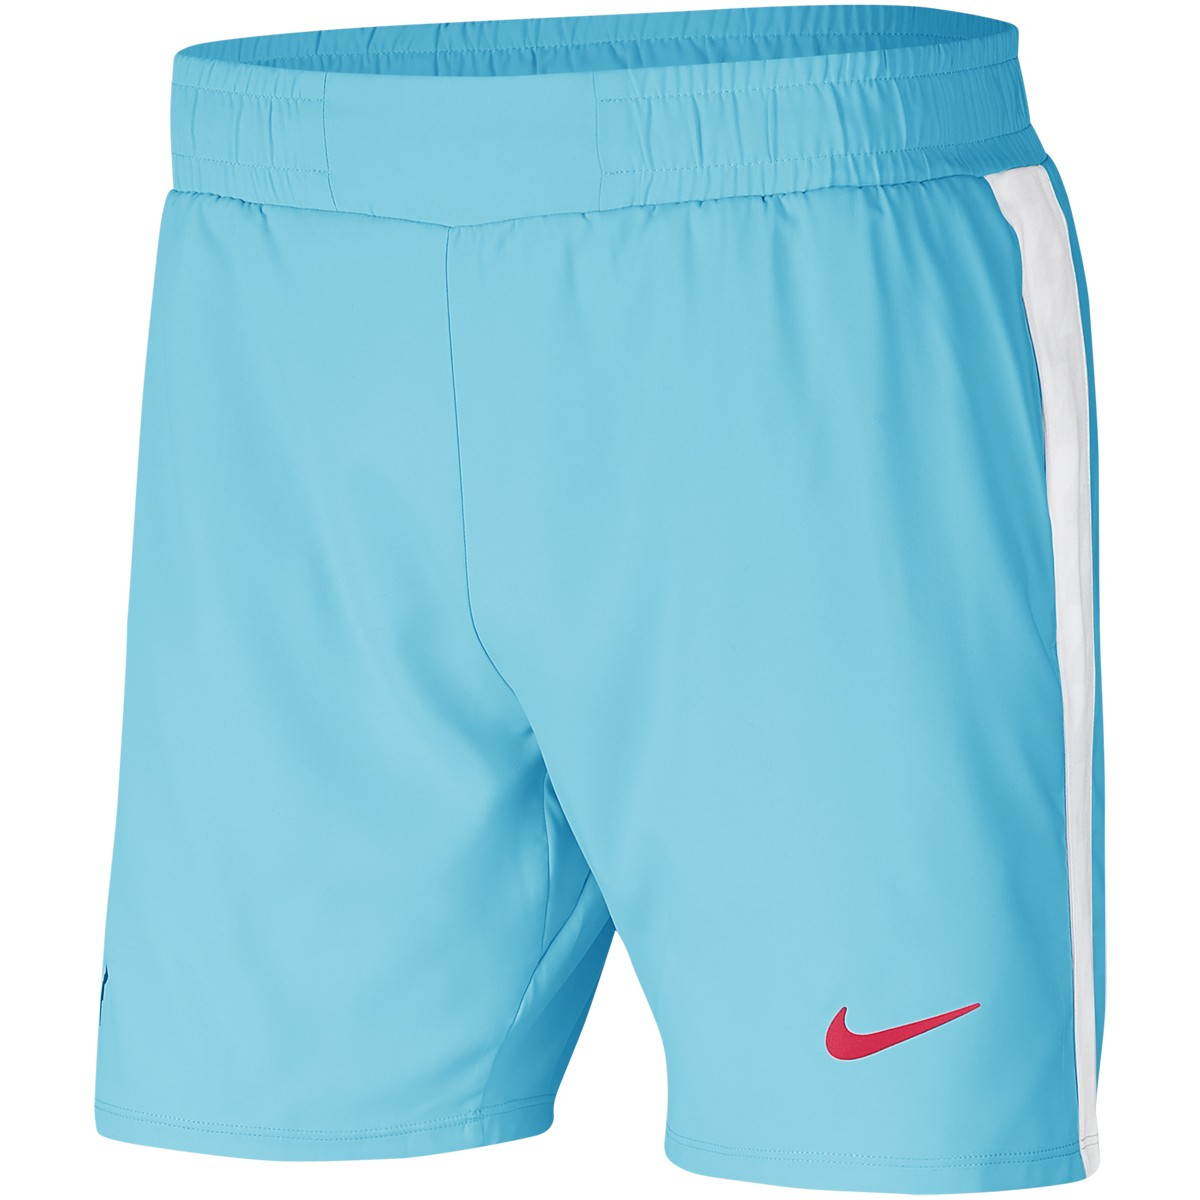 Nike Nadal 7 Paris Shorts Nike Men S Clothing Tennispro